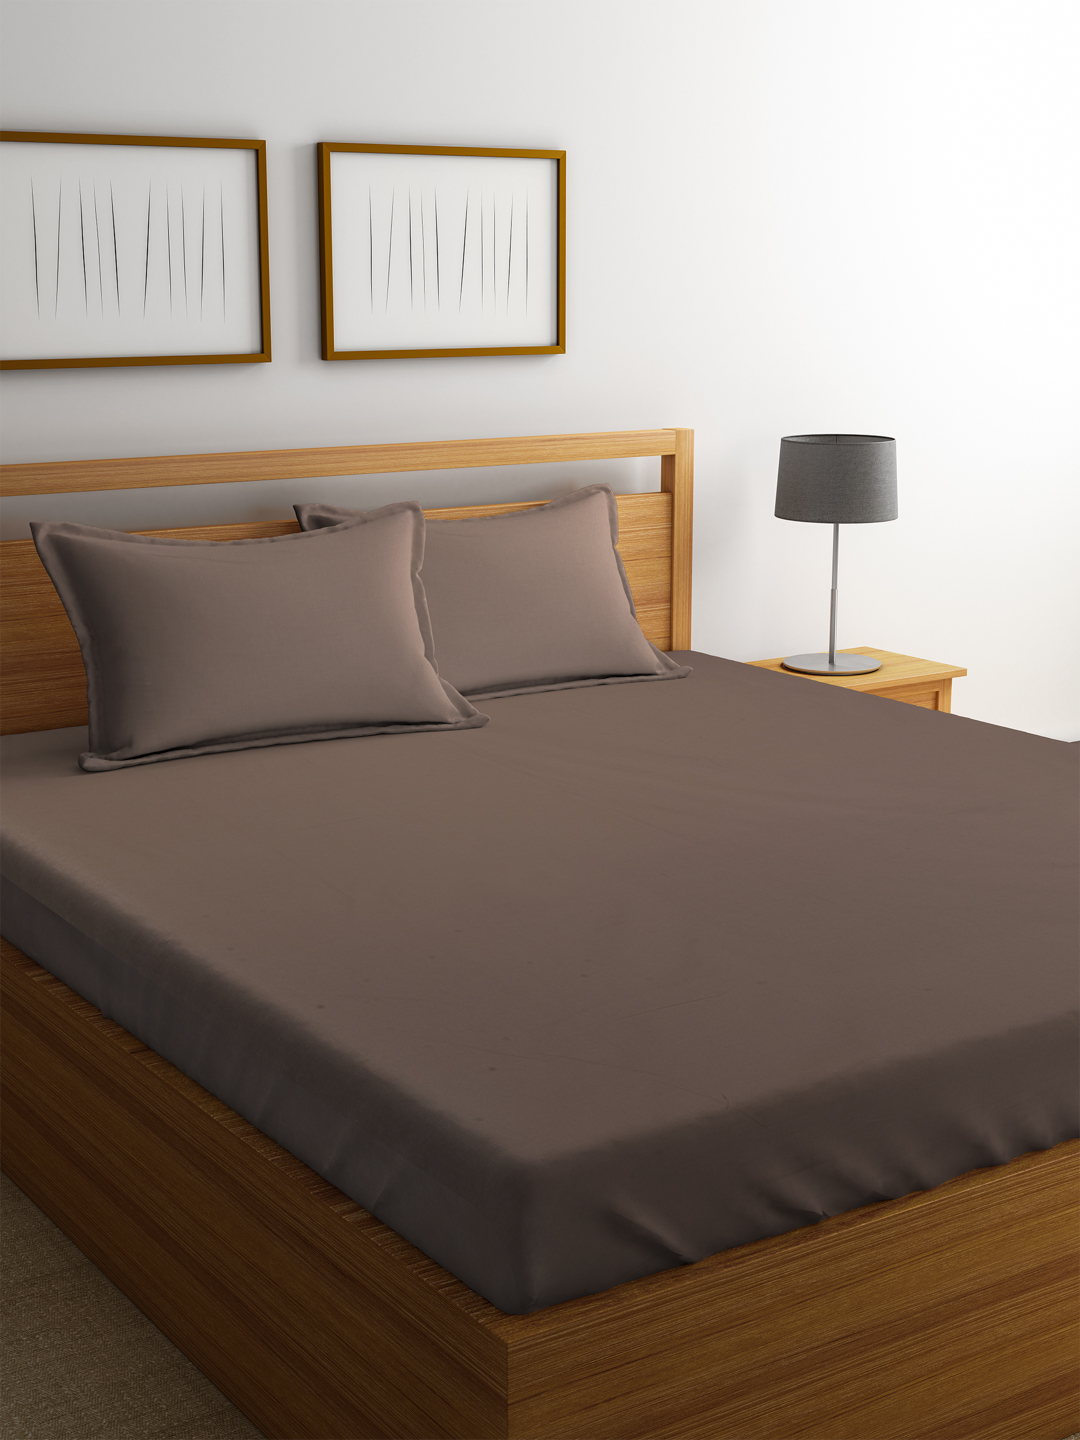 Portico Percale Cotton Double Bed Sheets in Oatmeal Colour by Portico